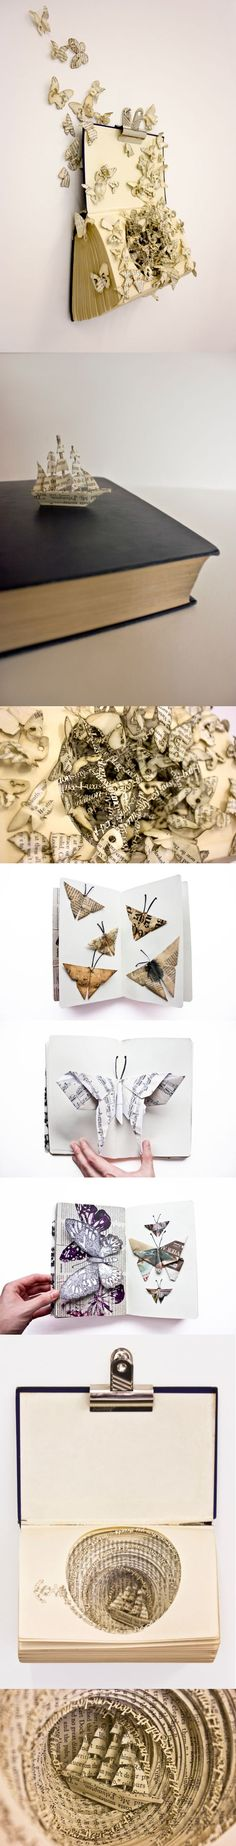 This artist book was created by Thomas Wightman. This book is about butterflies.It was created by using a scalpel to cut out different shapes of butterflies. I like this book because it looks like the butterflies are flying around and it looks 3D.